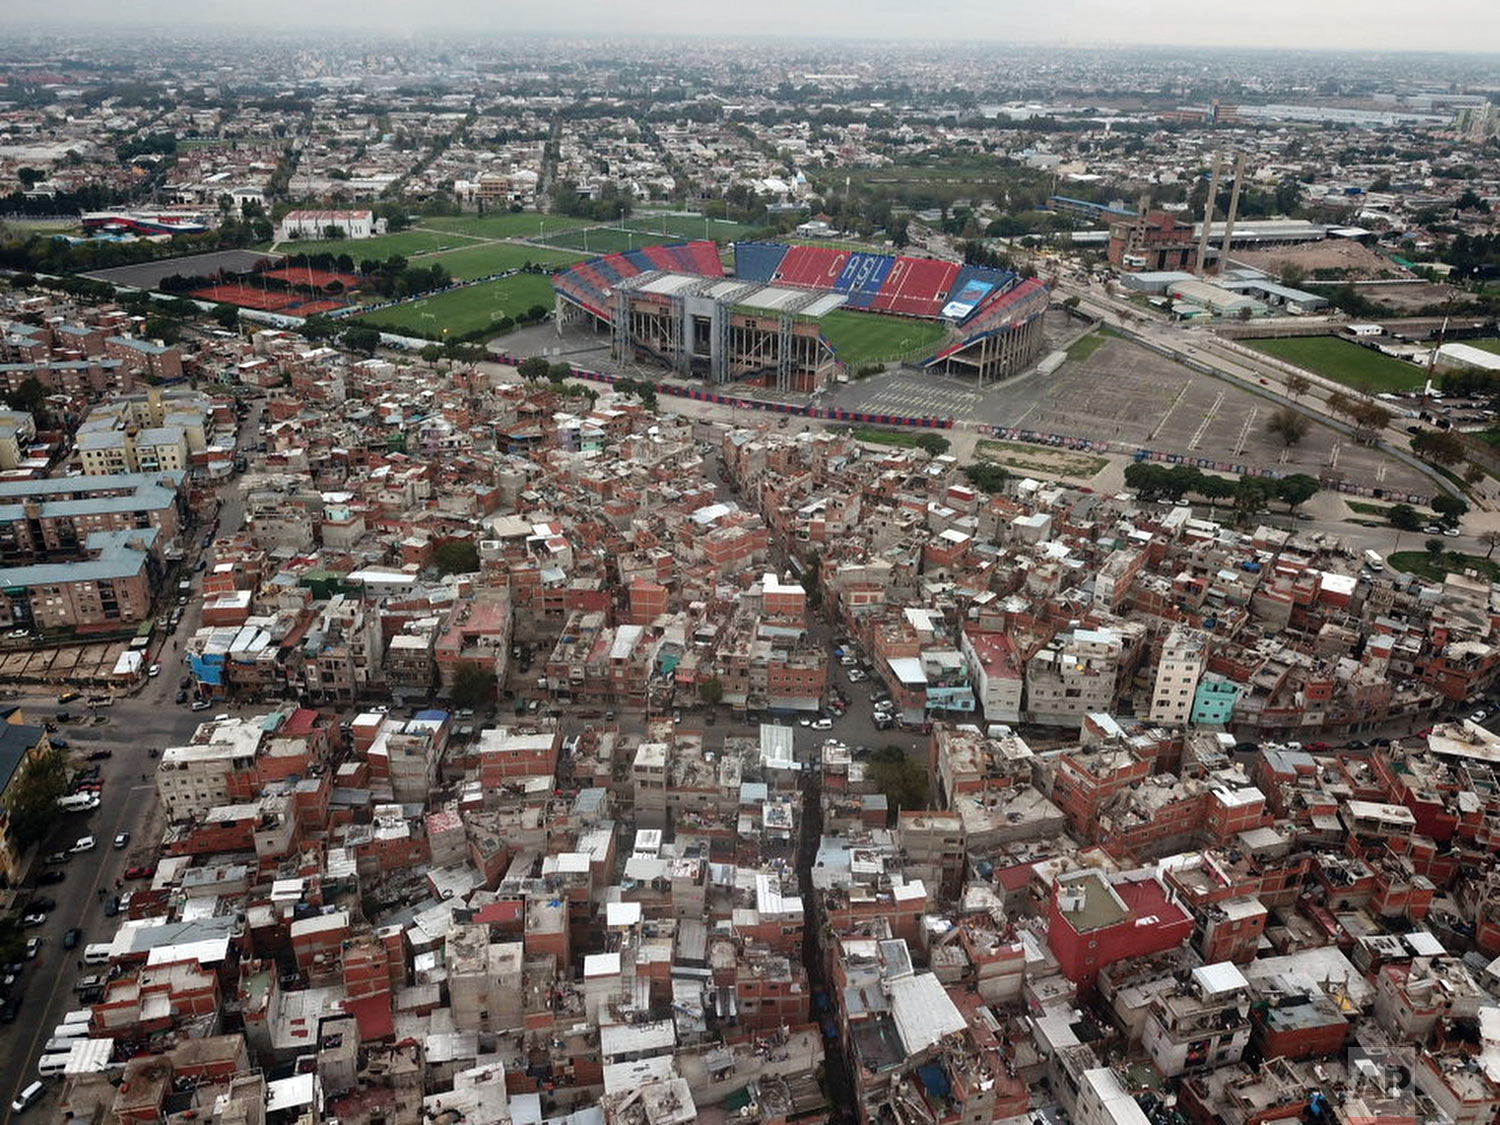 """The San Lorenzo soccer team stadium stands amid low income homes in the """"Bajo Flores"""" neighborhood of Buenos Aires, Argentina, April 27, 2018. (AP Photo/Rodrigo Abd)"""